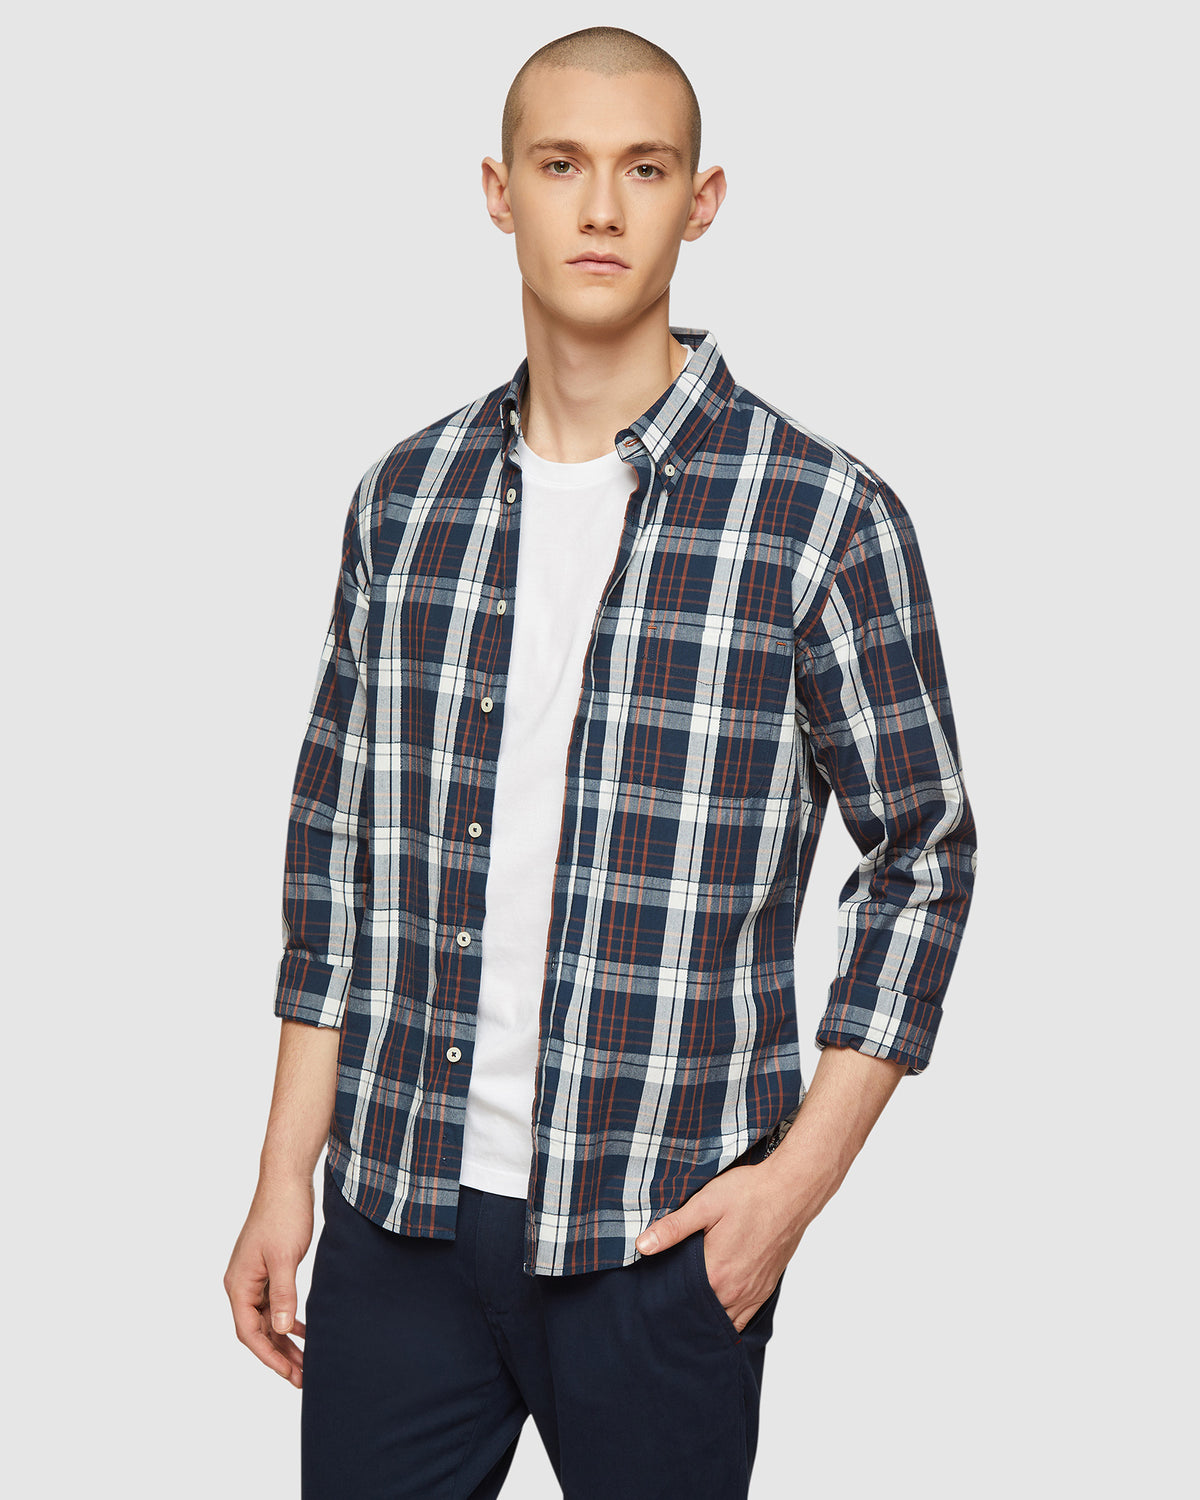 UXBRIDGE CHECKED SHIRT NAVY/TAN